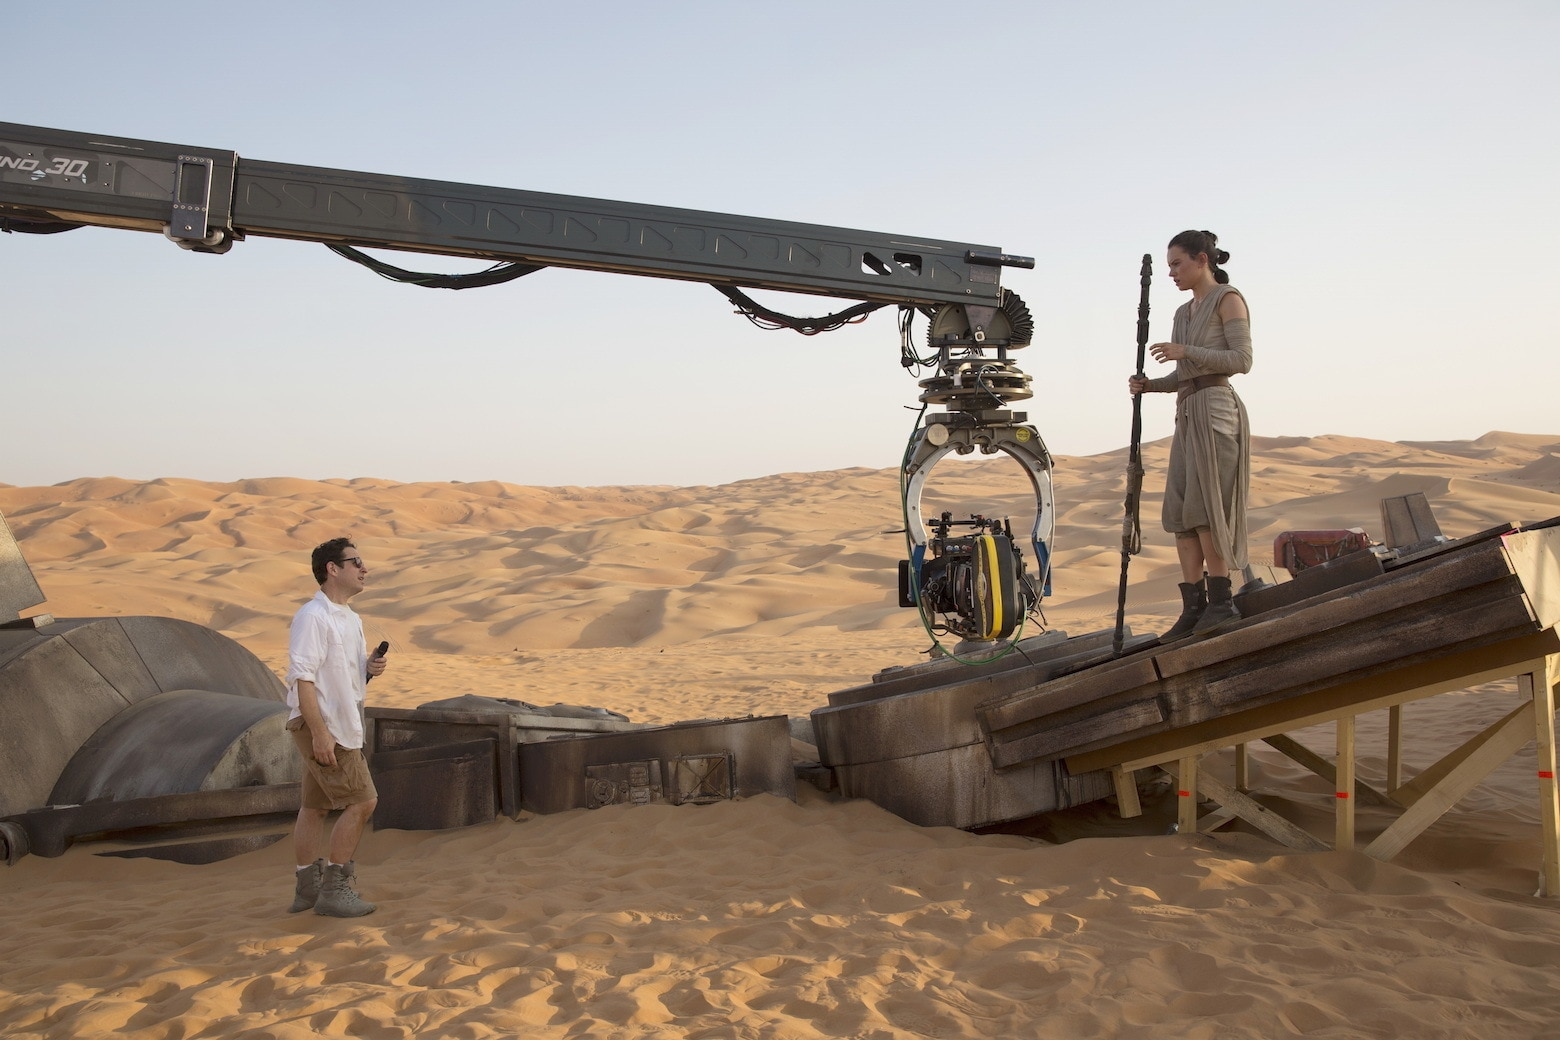 J.J. Abrams directs a scene with Daisy Ridley as Rey.